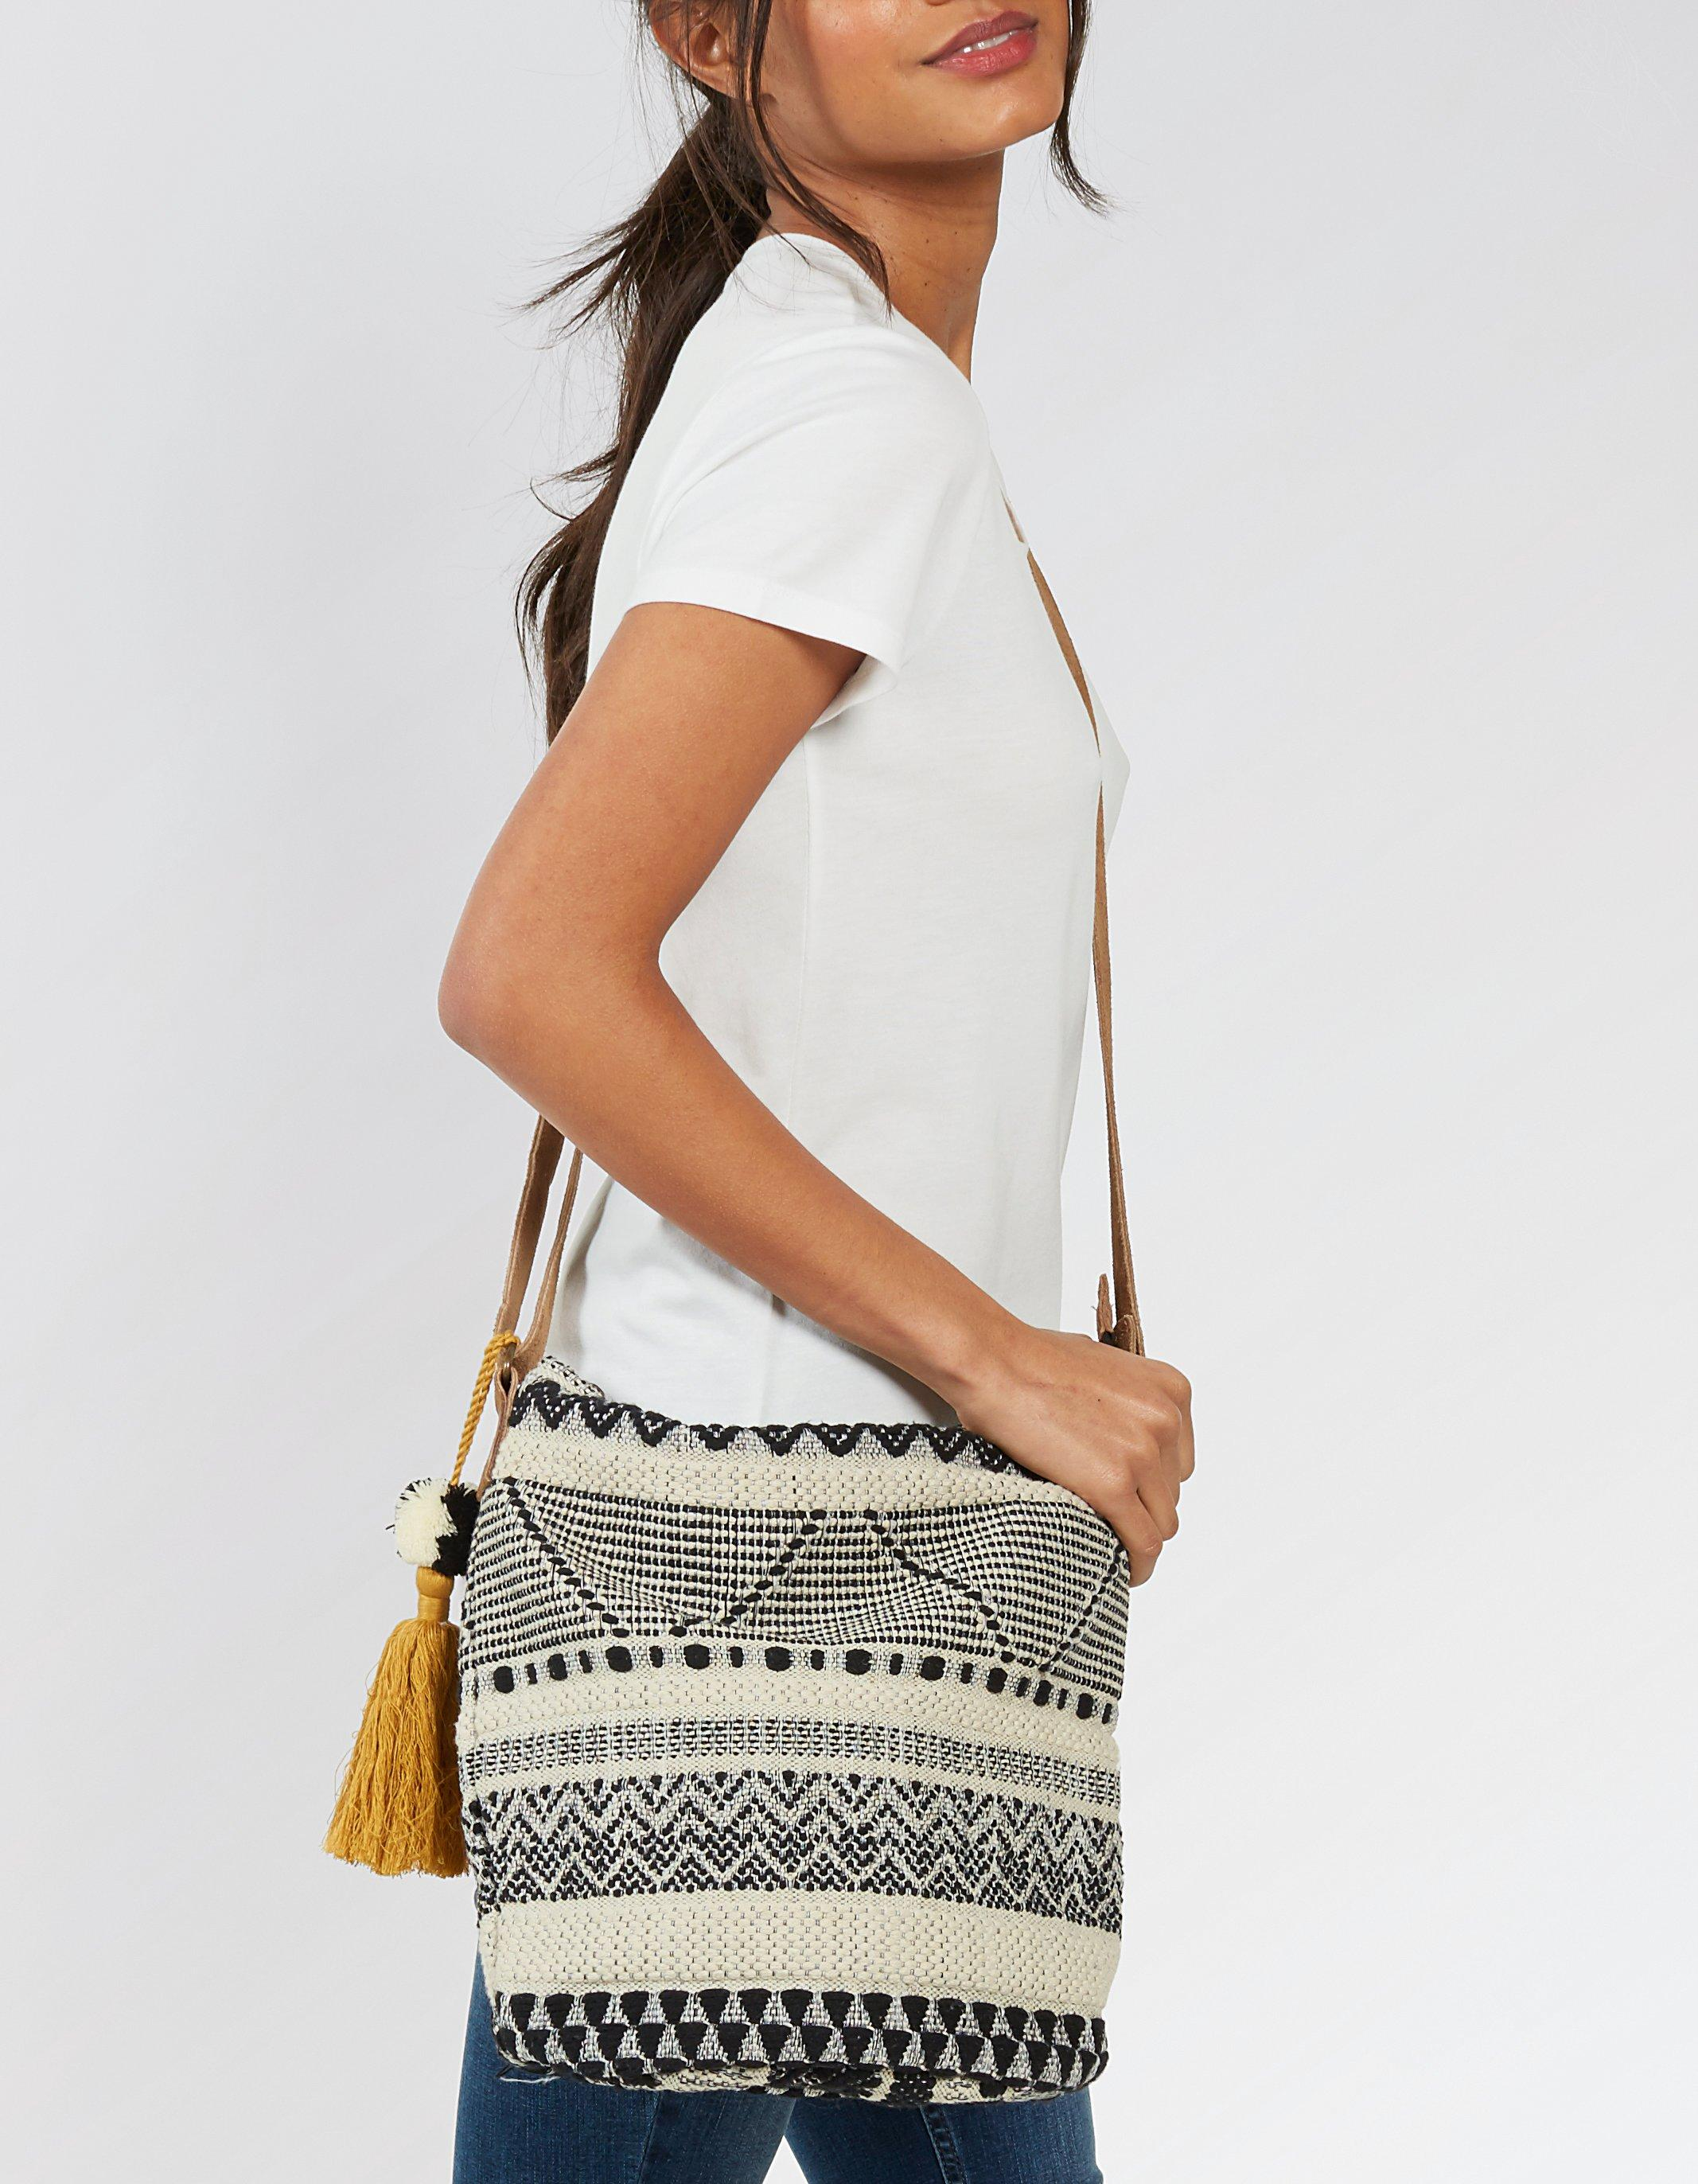 Aztec Woven Tia Cross Body Bag